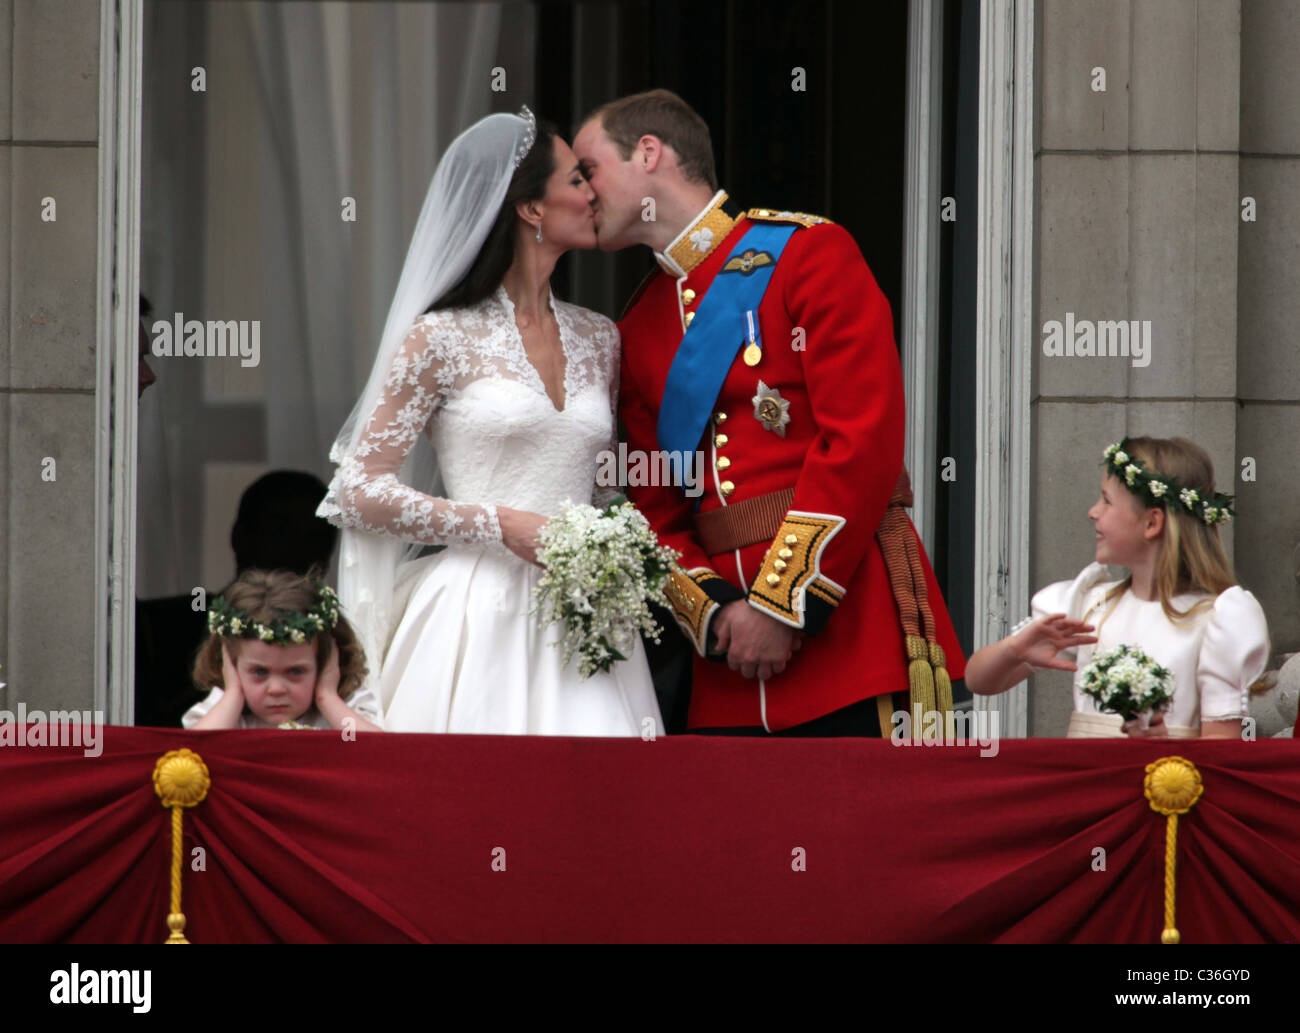 THE DUKE AND DUCHESS OF CAMBRIDGE AFTER THEIR WEDDING  - BUCKINGHAM PALACE. 29.4.11 PICS BY NICHOLAS BOWMAN - Stock Image